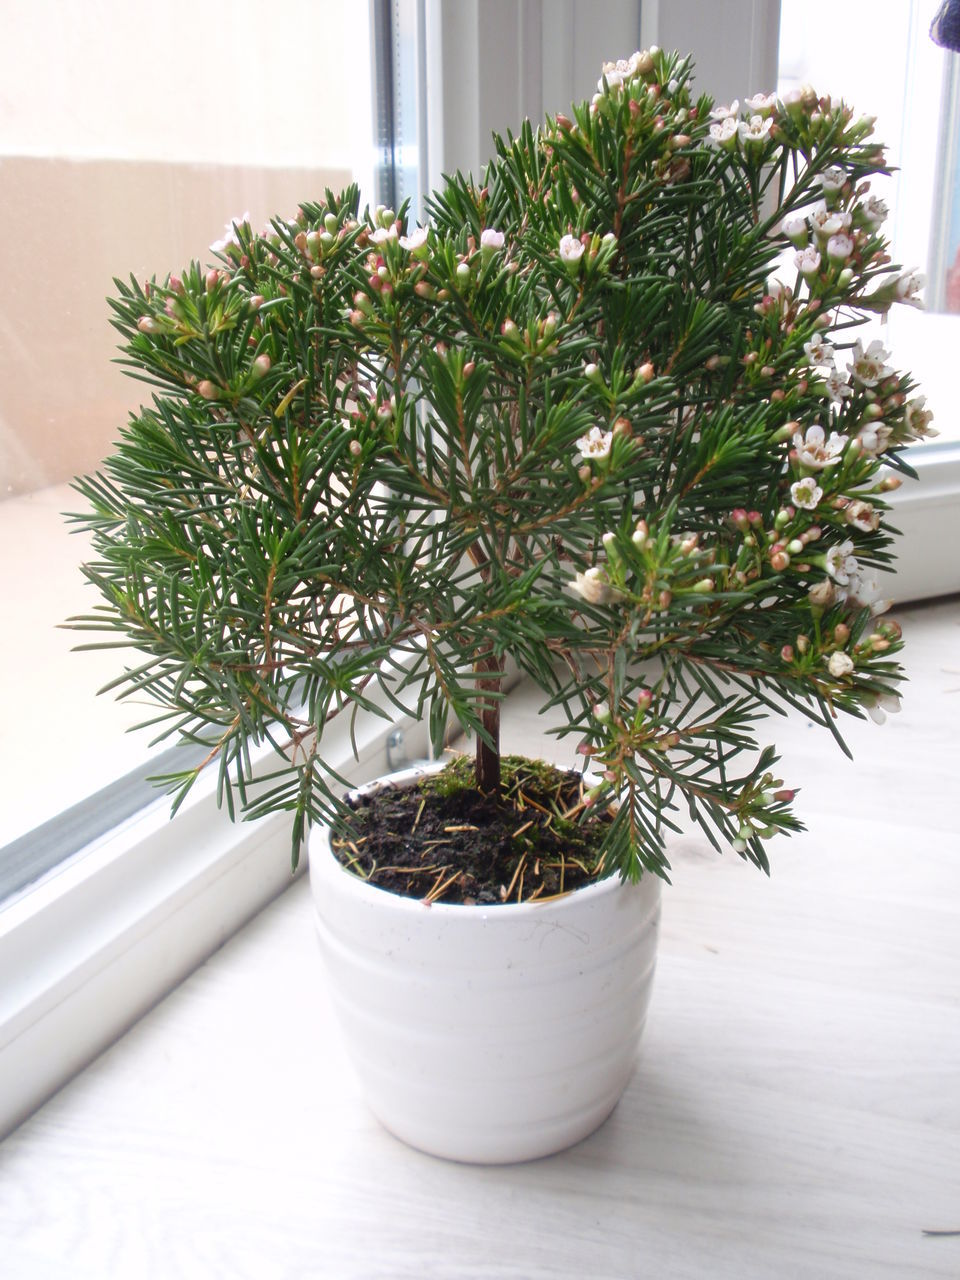 growth, potted plant, plant, green color, nature, bonsai tree, no people, indoors, leaf, close-up, day, beauty in nature